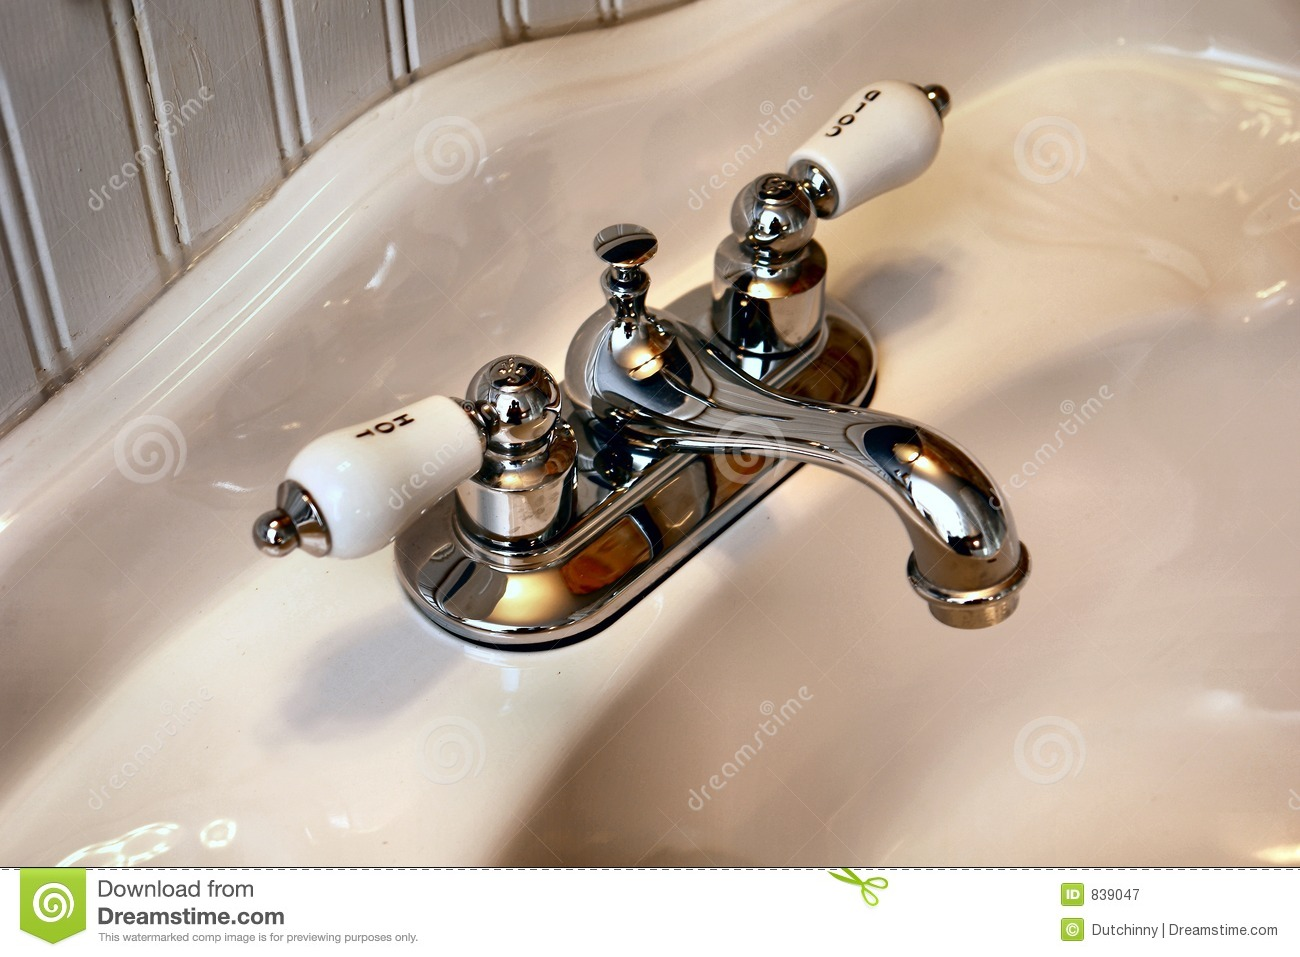 Retro faucets stock image. Image of relax, shower, water - 839047